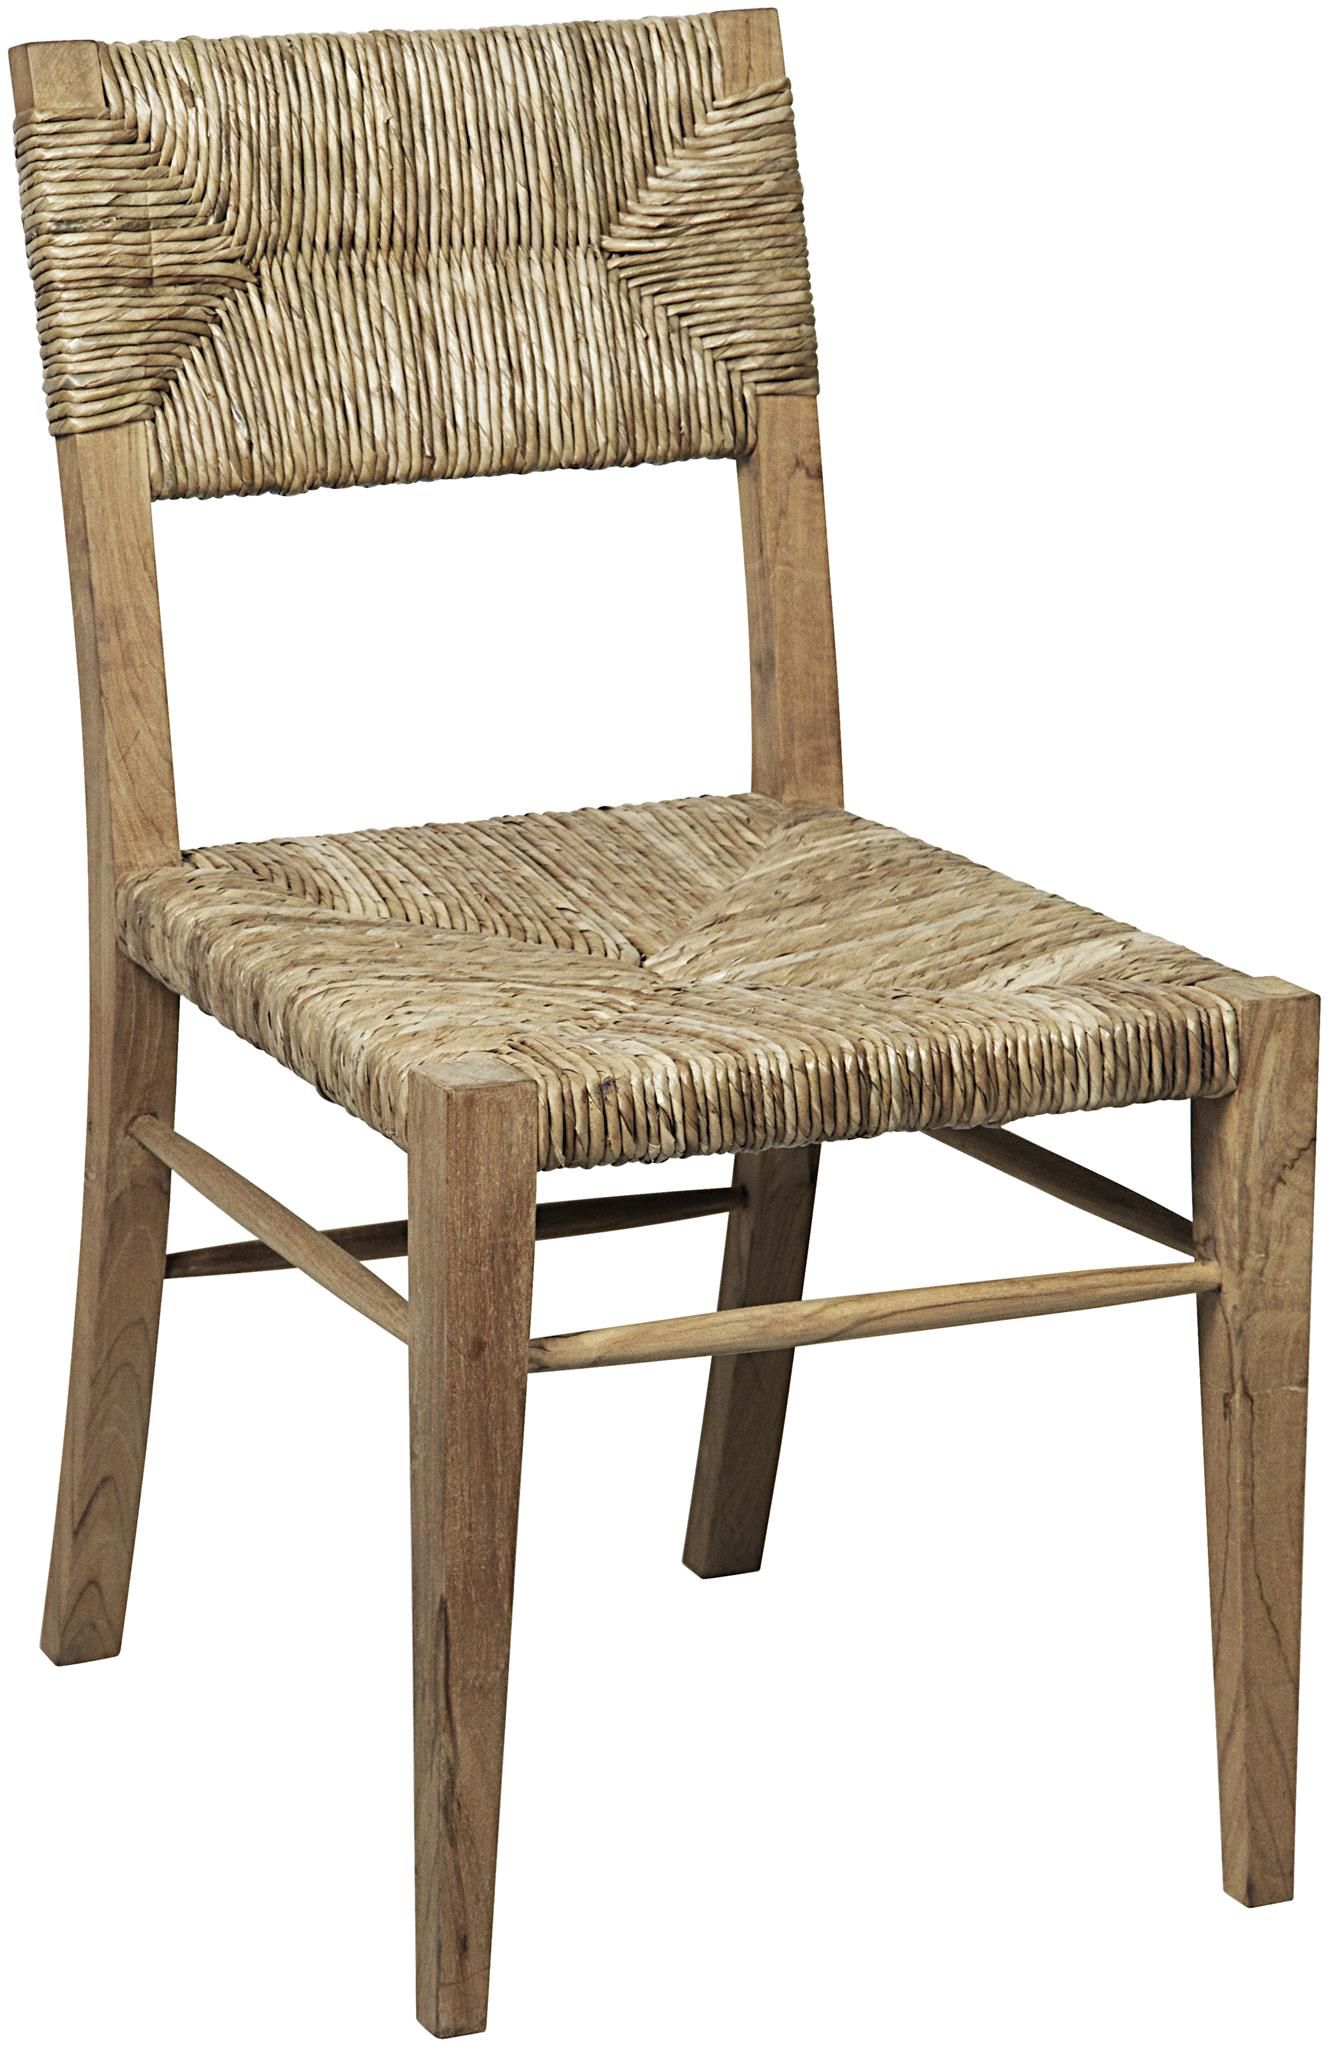 Small Stewart Teak And Seagrass Dining Chair Seagrass Dining